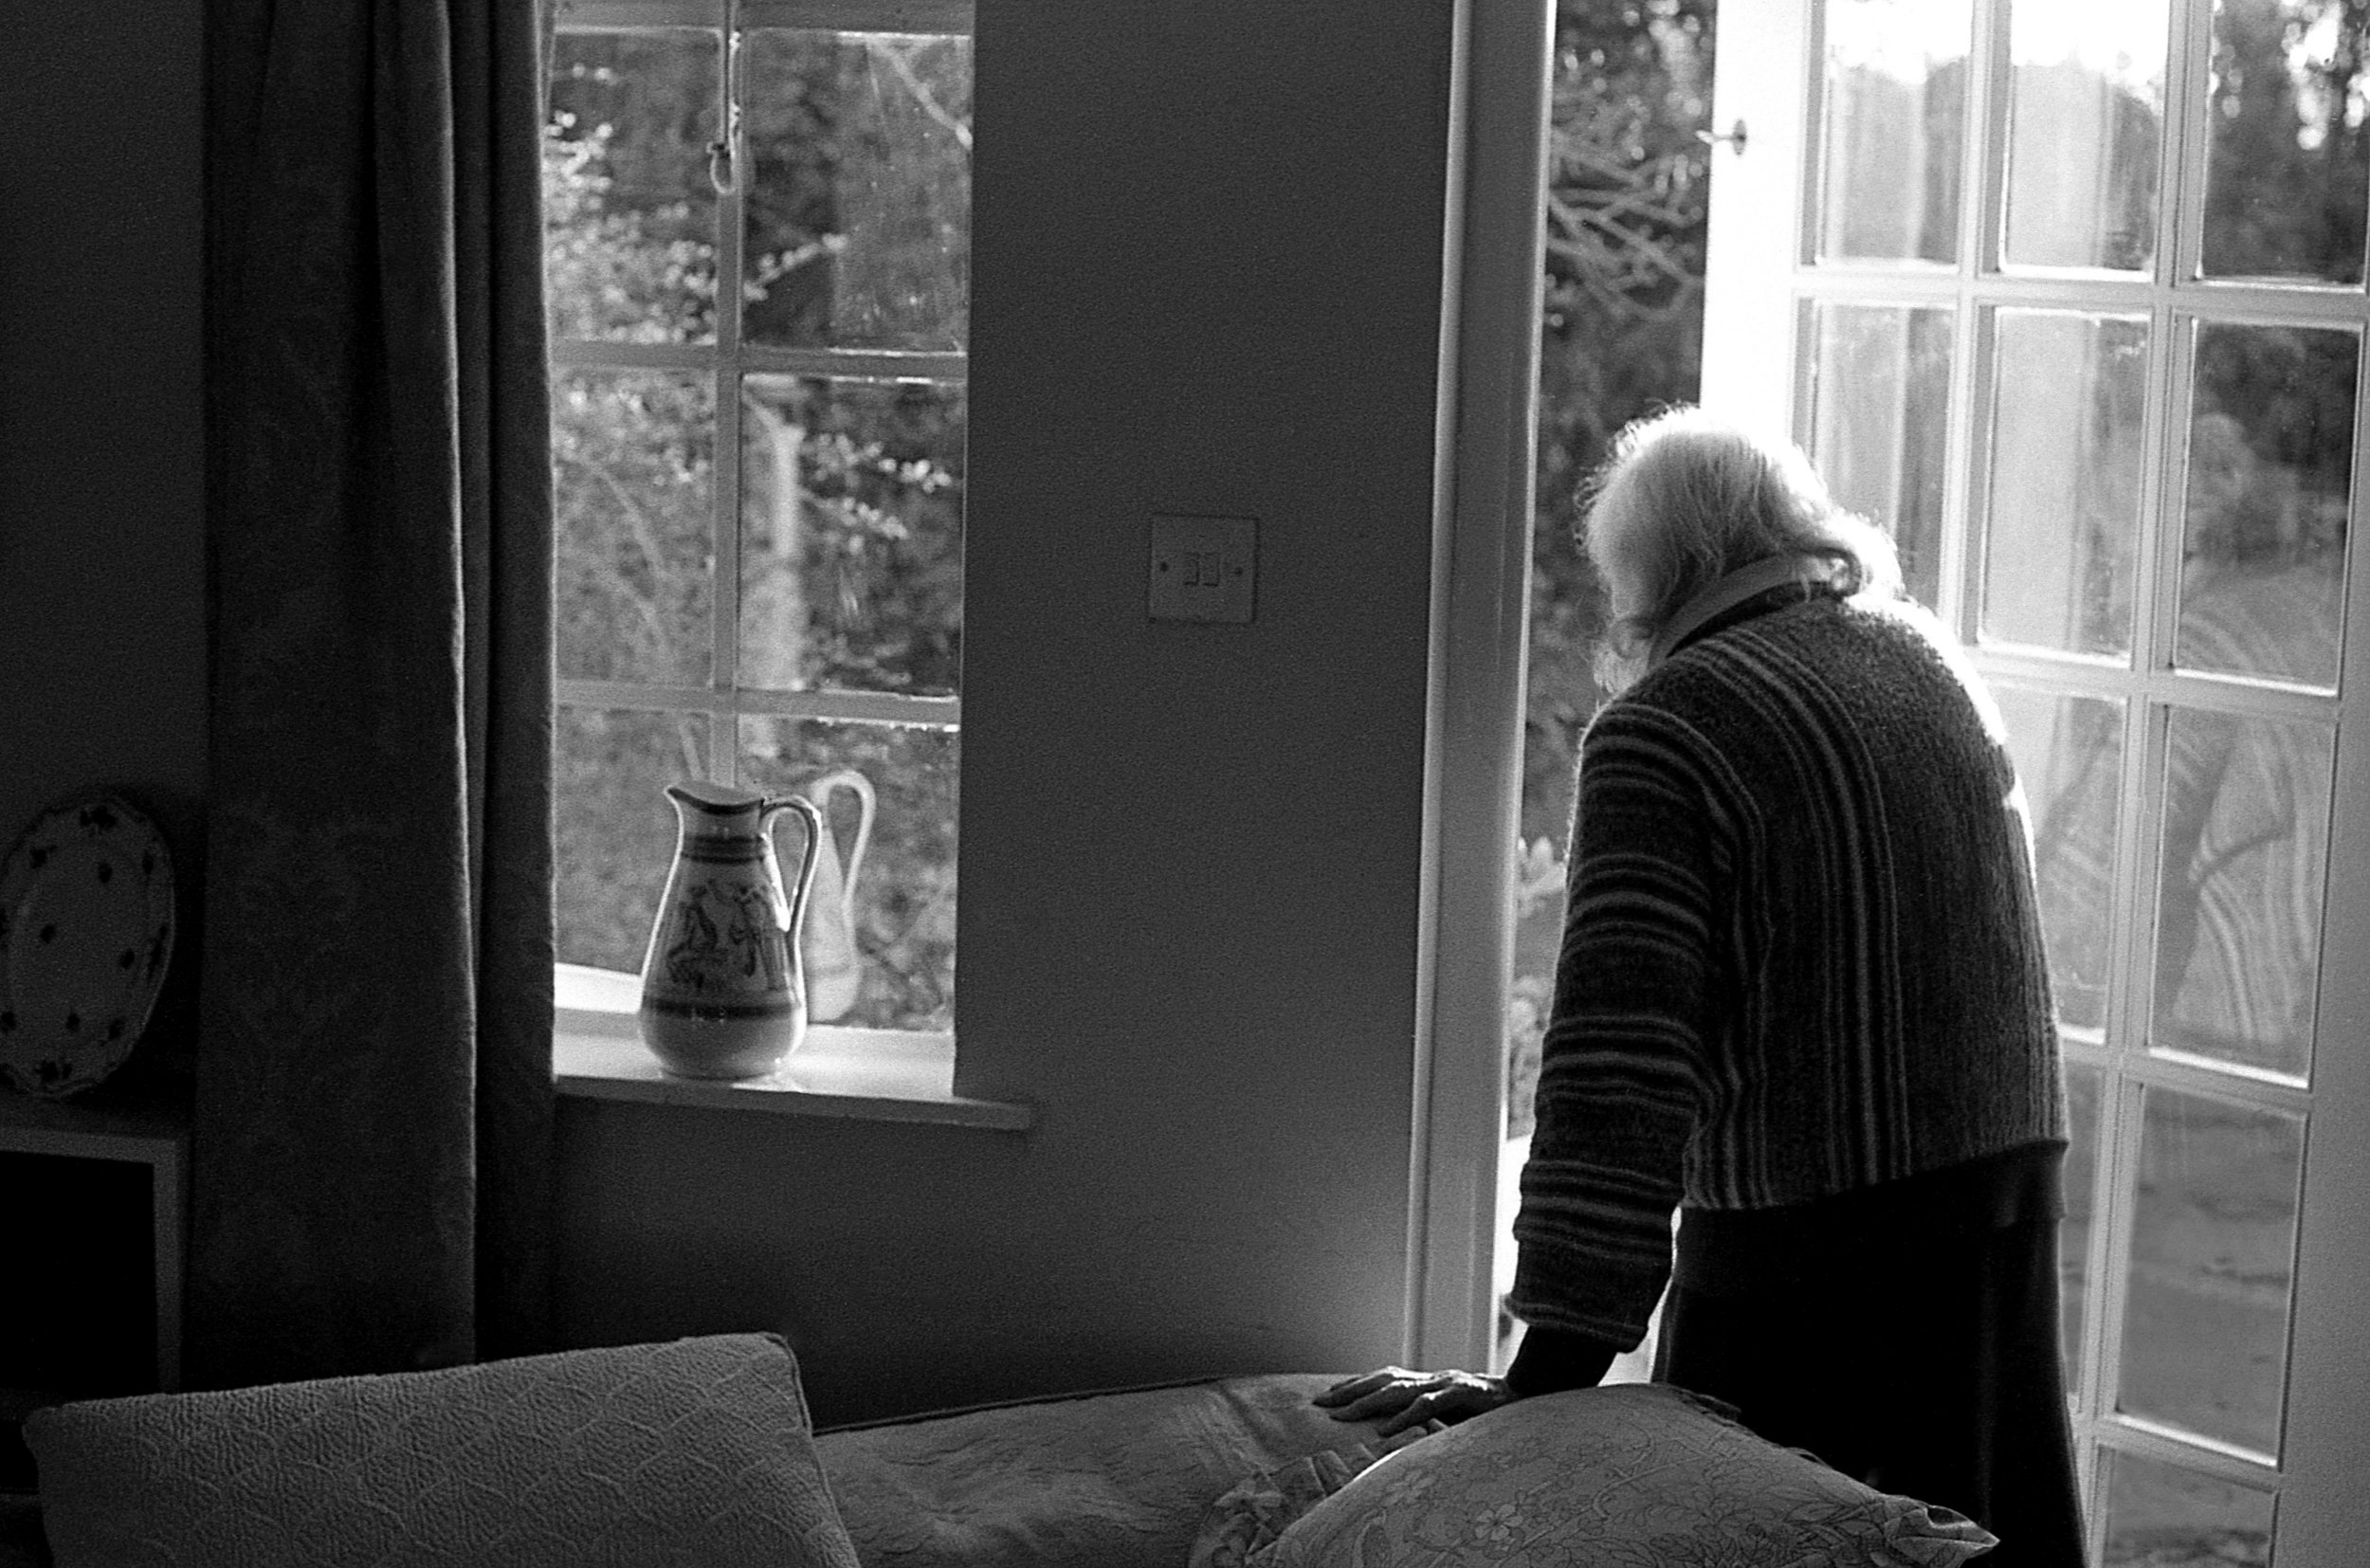 (1) Photographs of the last ten years parents spent together. Paddy Summerfield photographed his parents for years - his mother developed Alzheimers disease, and his father was her sole carer. It is a story of love, of friendship, of loss.